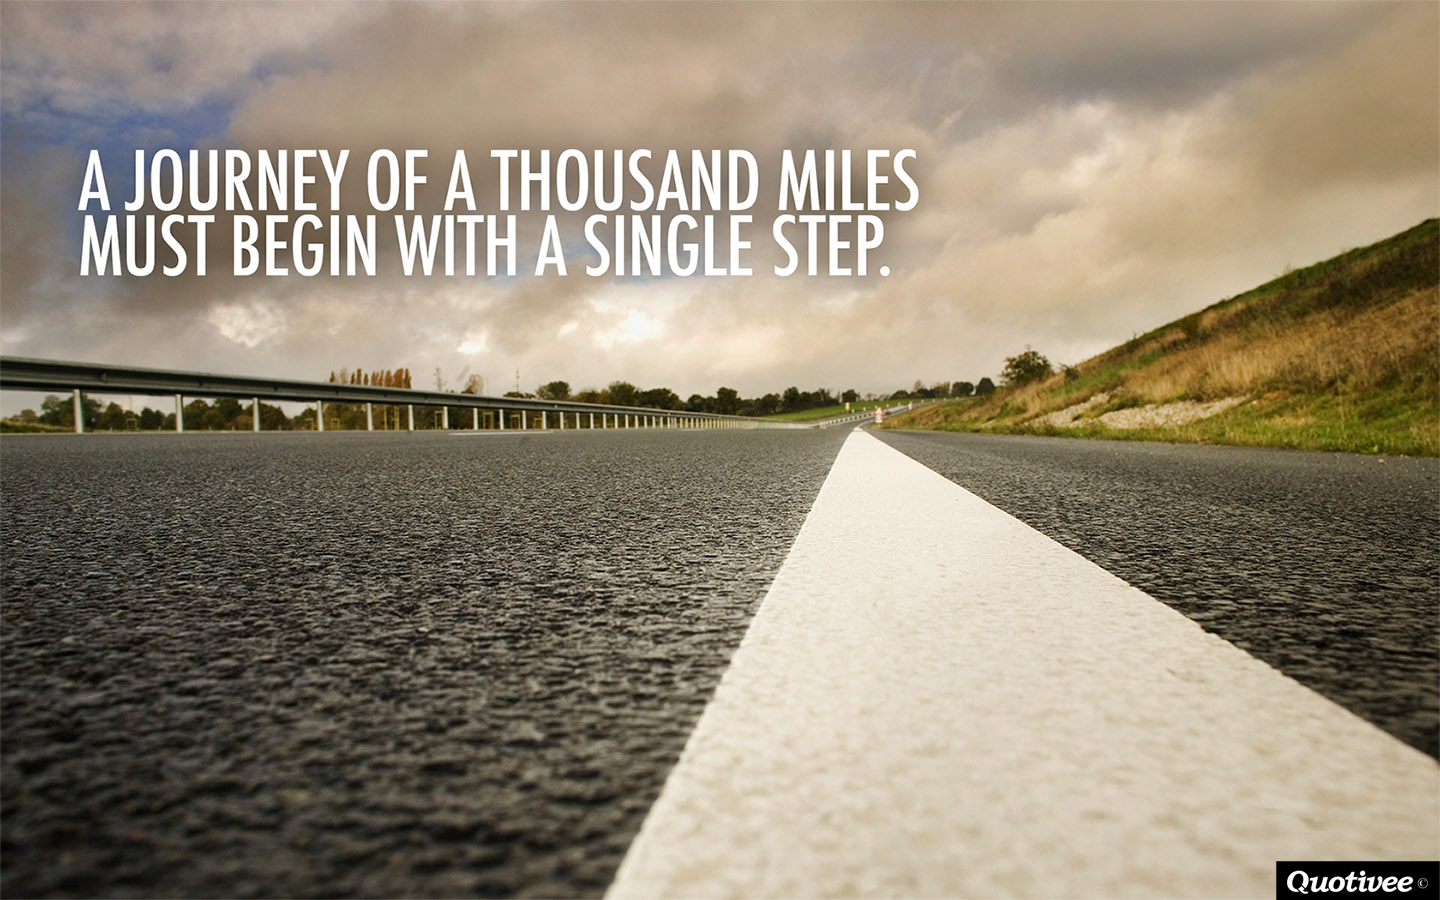 Malcolm X Wallpaper Quotes A Journey Of A Thousand Miles Inspirational Quotes